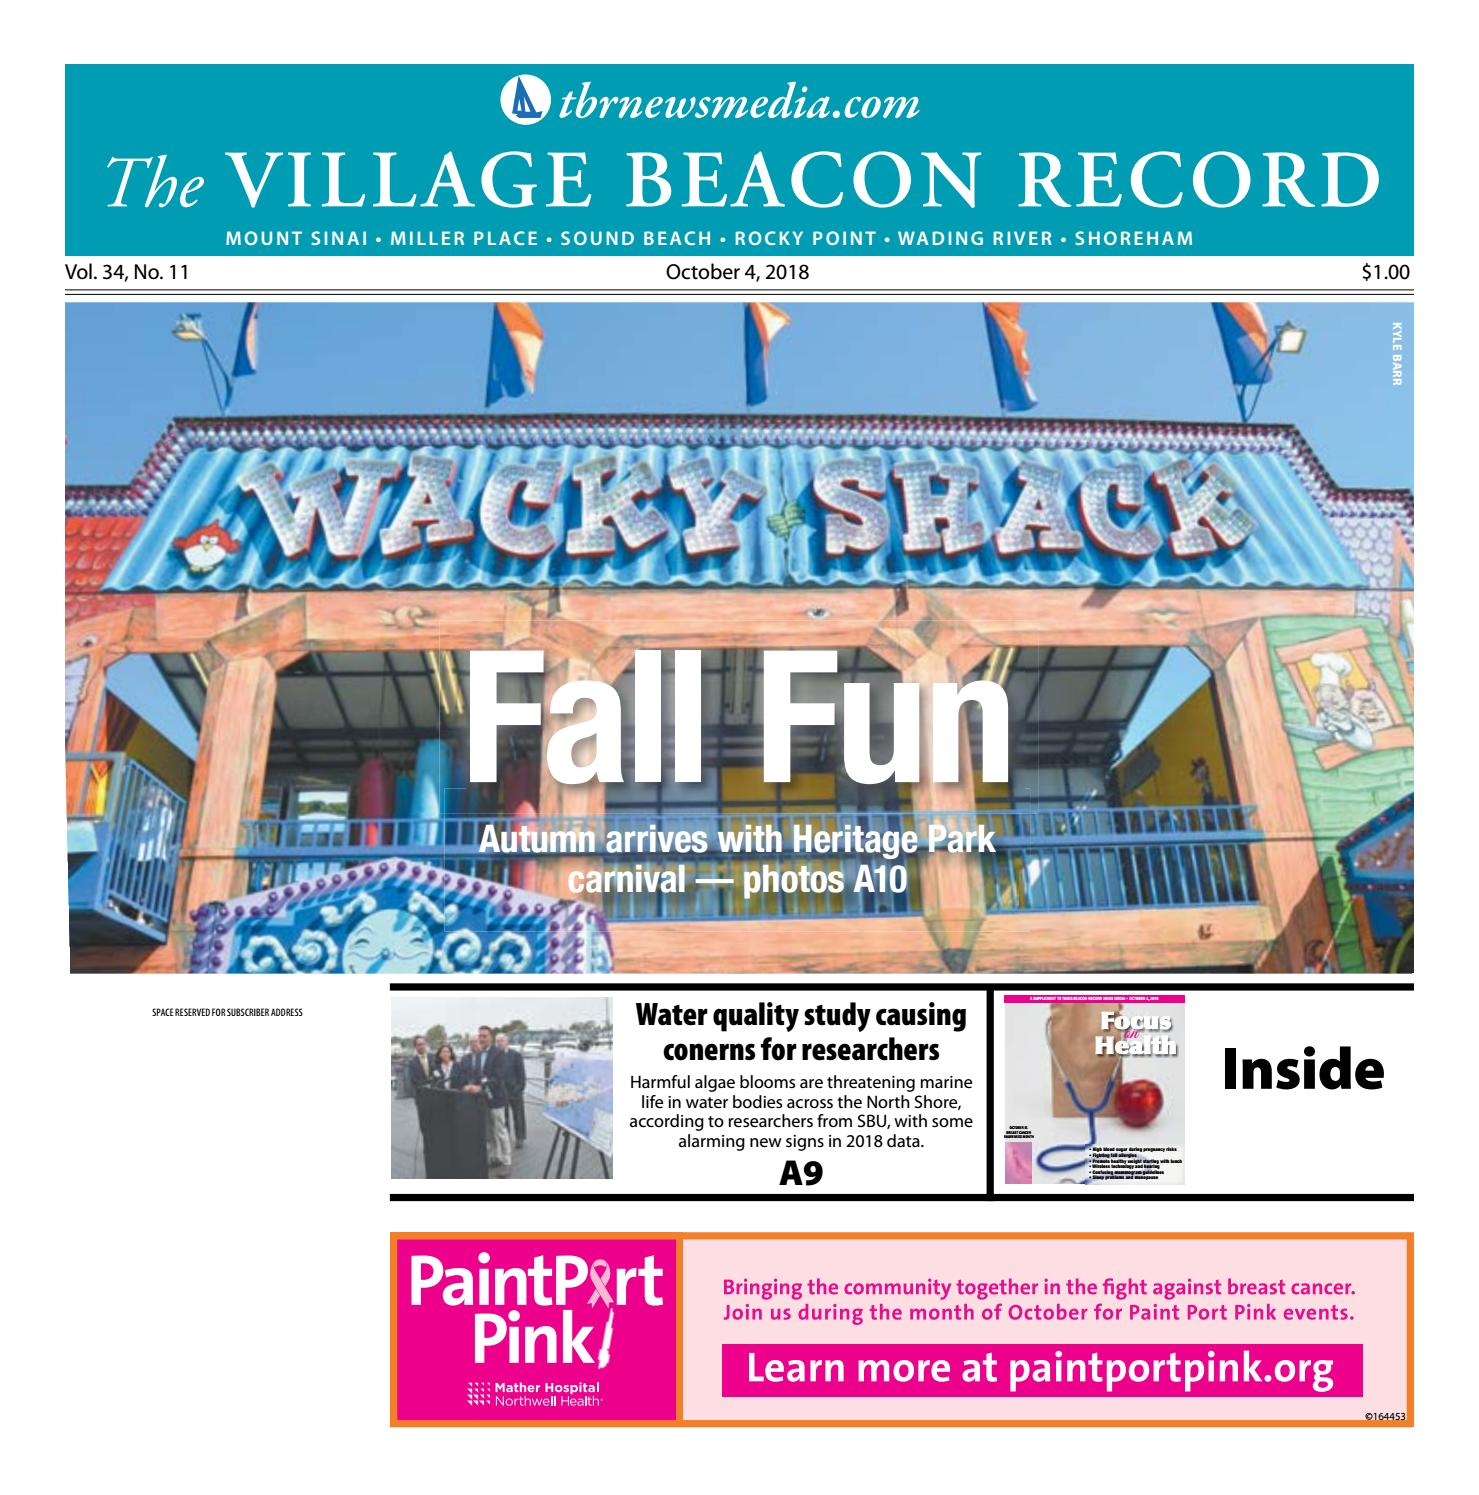 The Village Beacon Record - October 4, 2018 by TBR News